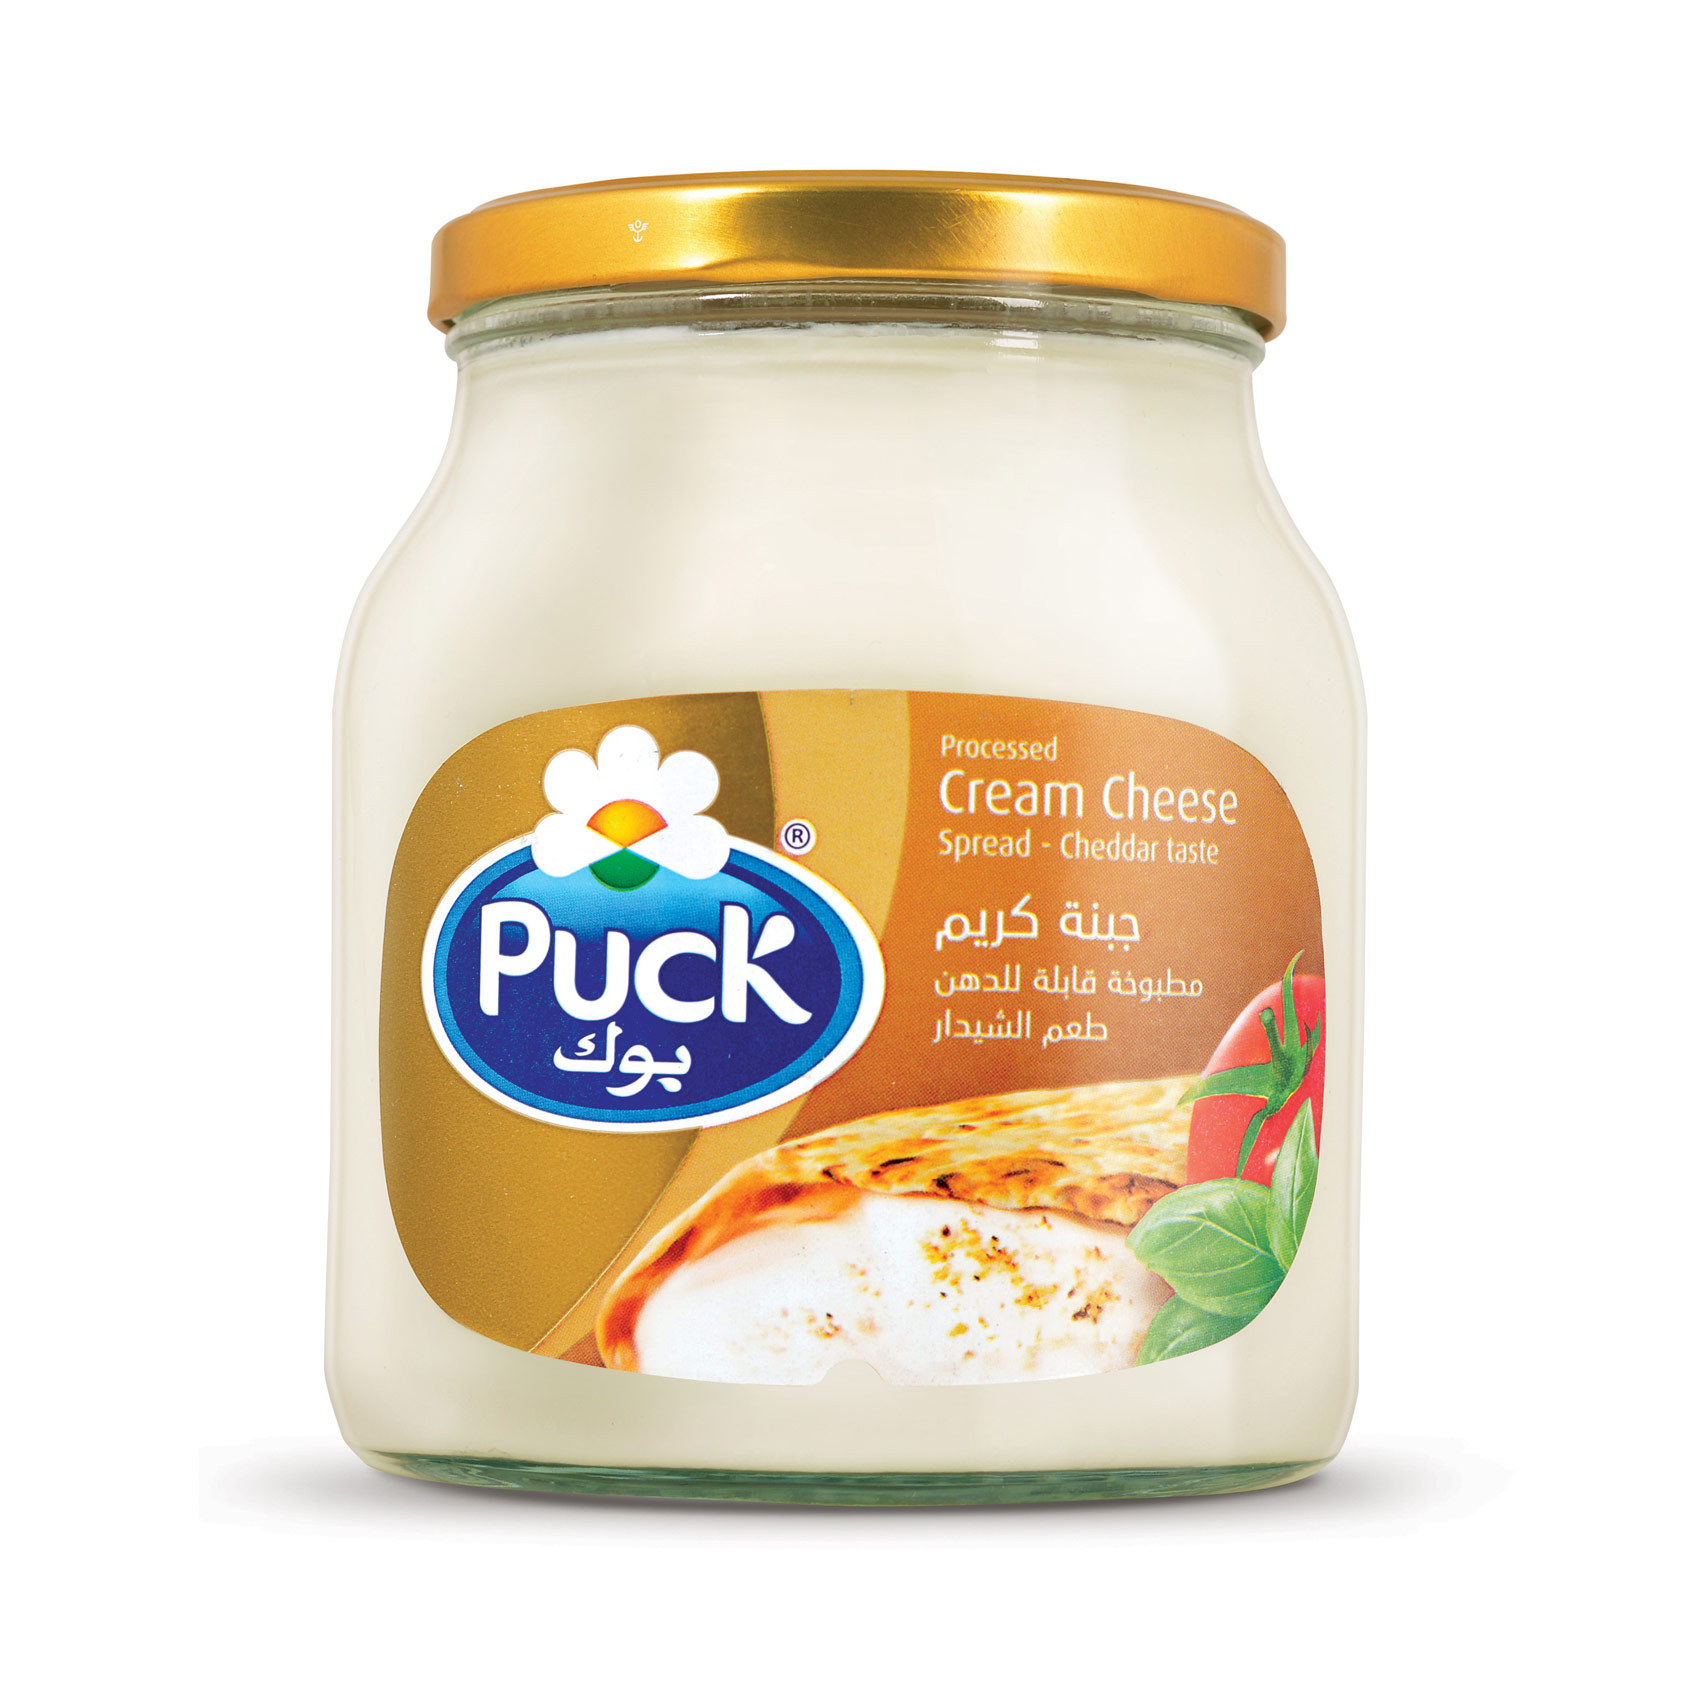 Puck Processed Cream Cheese Spread Cheddar Taste 910g